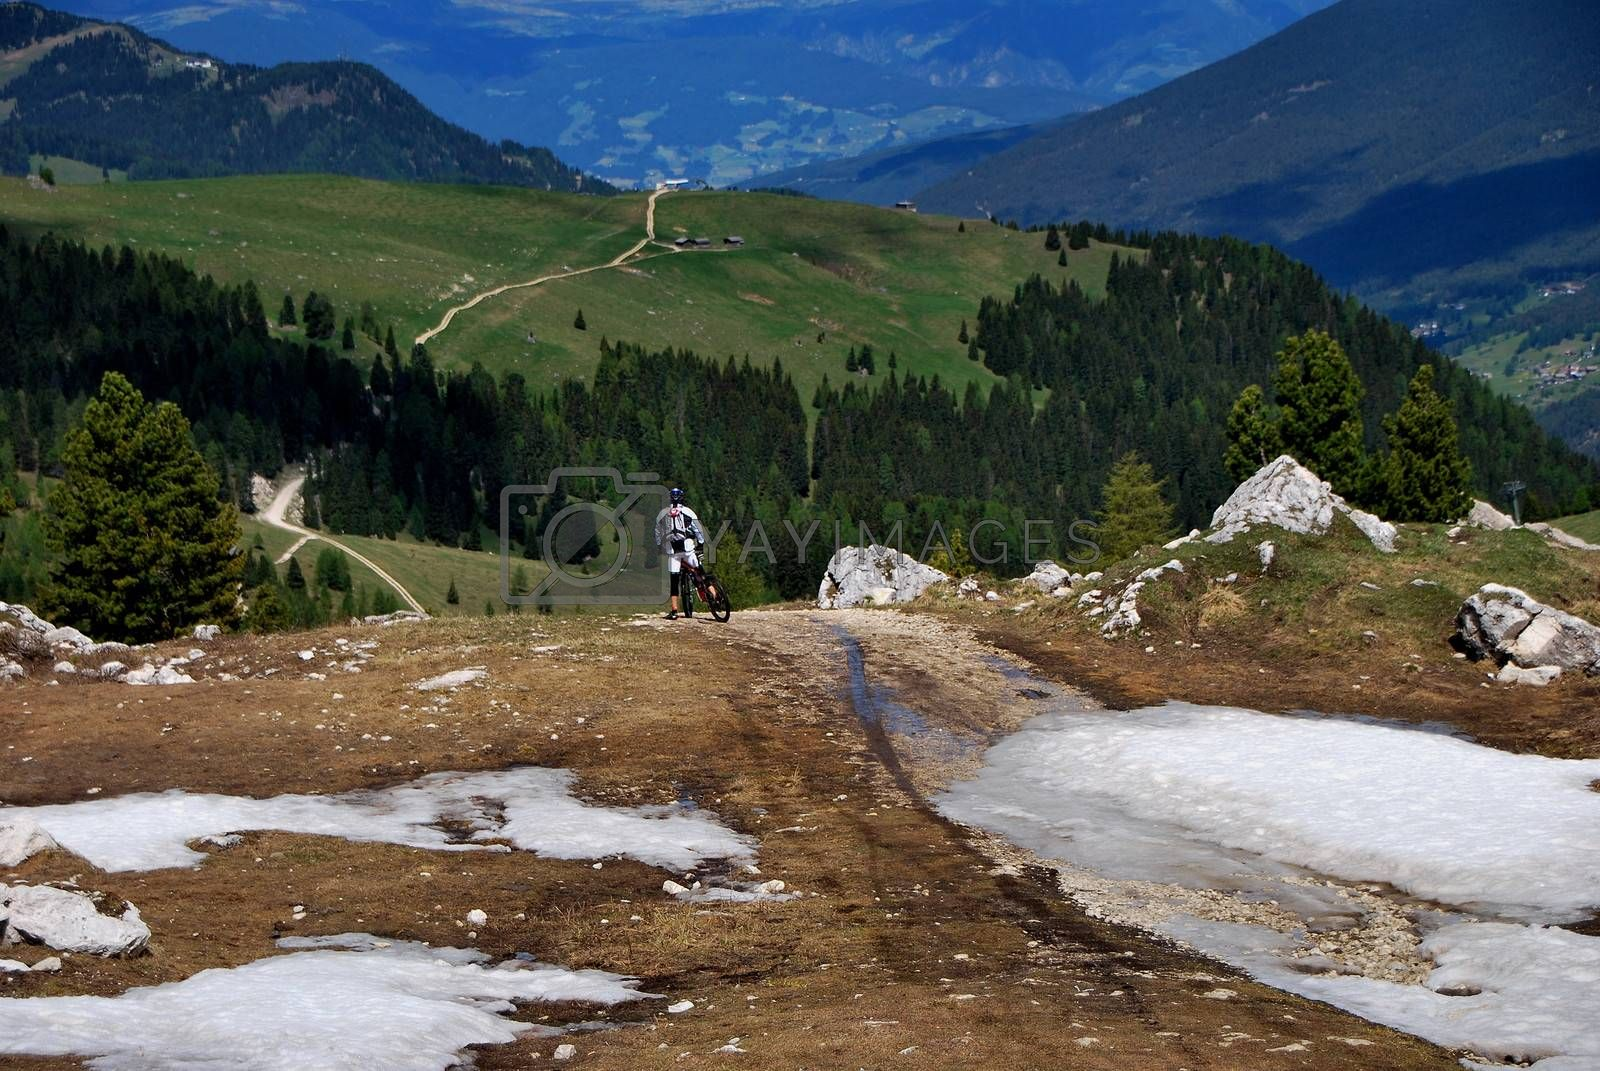 mountain biker before departure in the mountains with snow